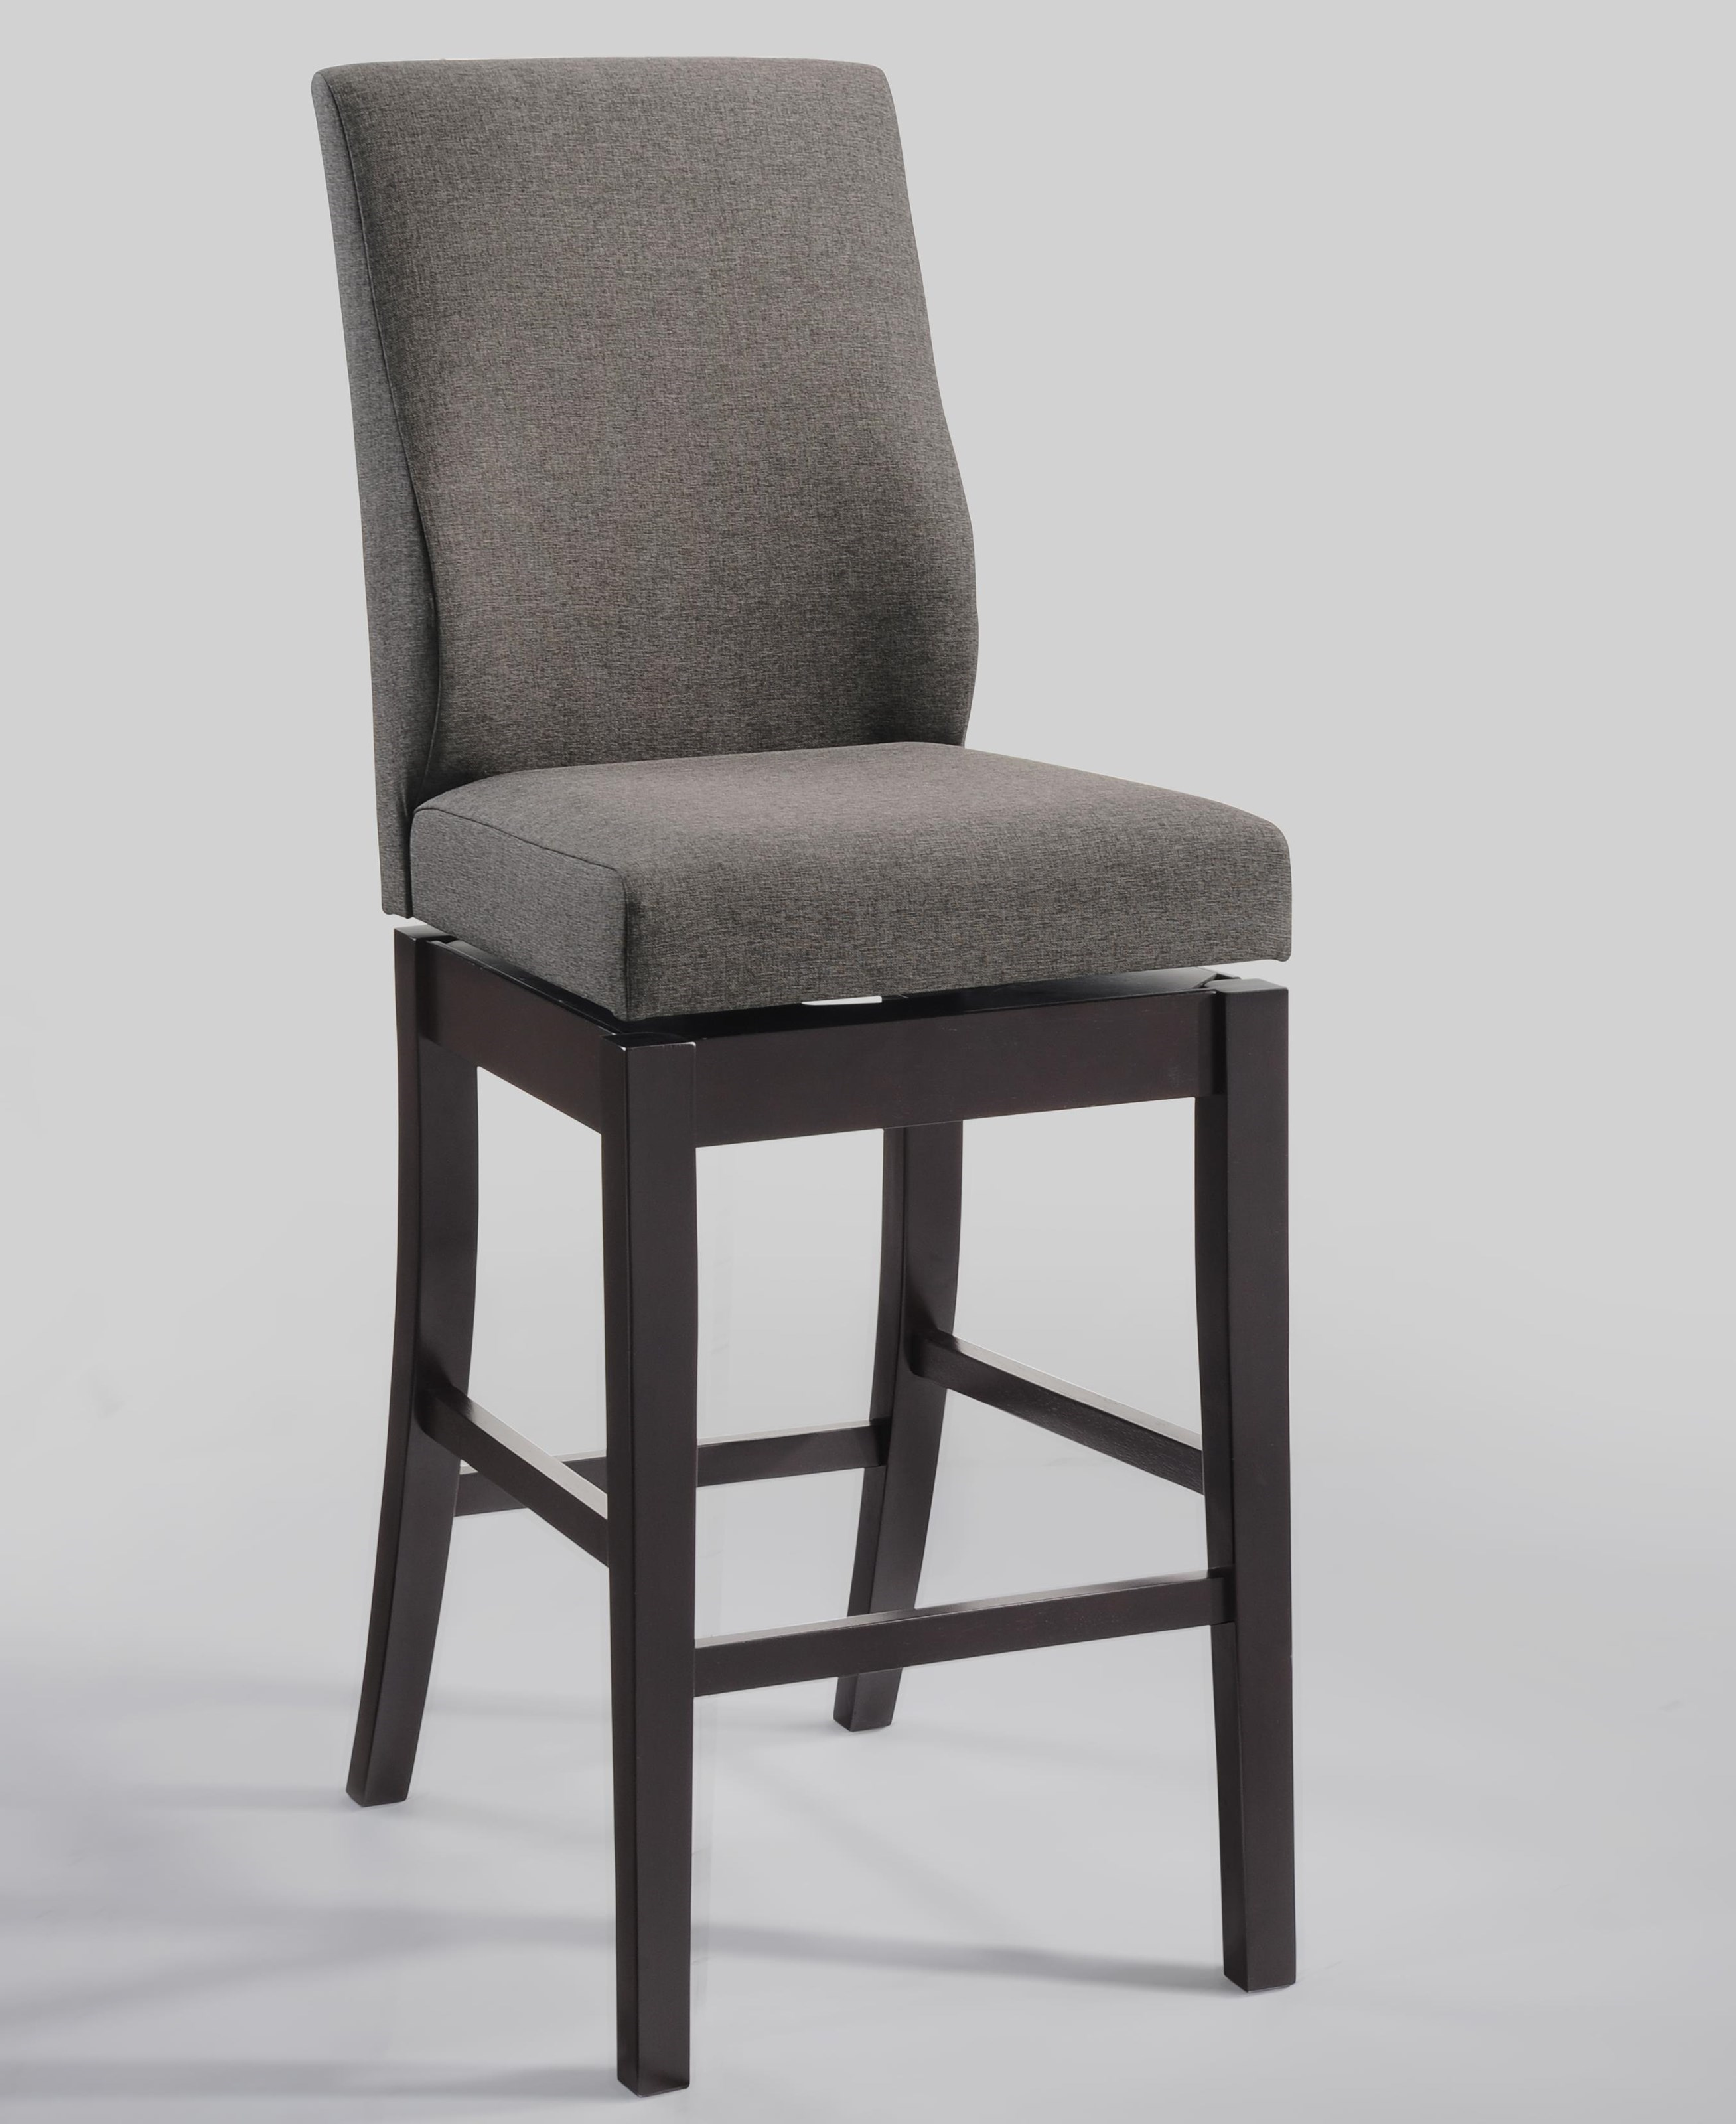 Crown Mark Bar Stools 2786S 24 PEB Counter Height Stool  : bar20stools20 20 8291615812986s 29 peb b1jpgscalebothampwidth500ampheight500ampfsharpen25ampdown from www.delsolfurniture.com size 500 x 500 jpeg 24kB